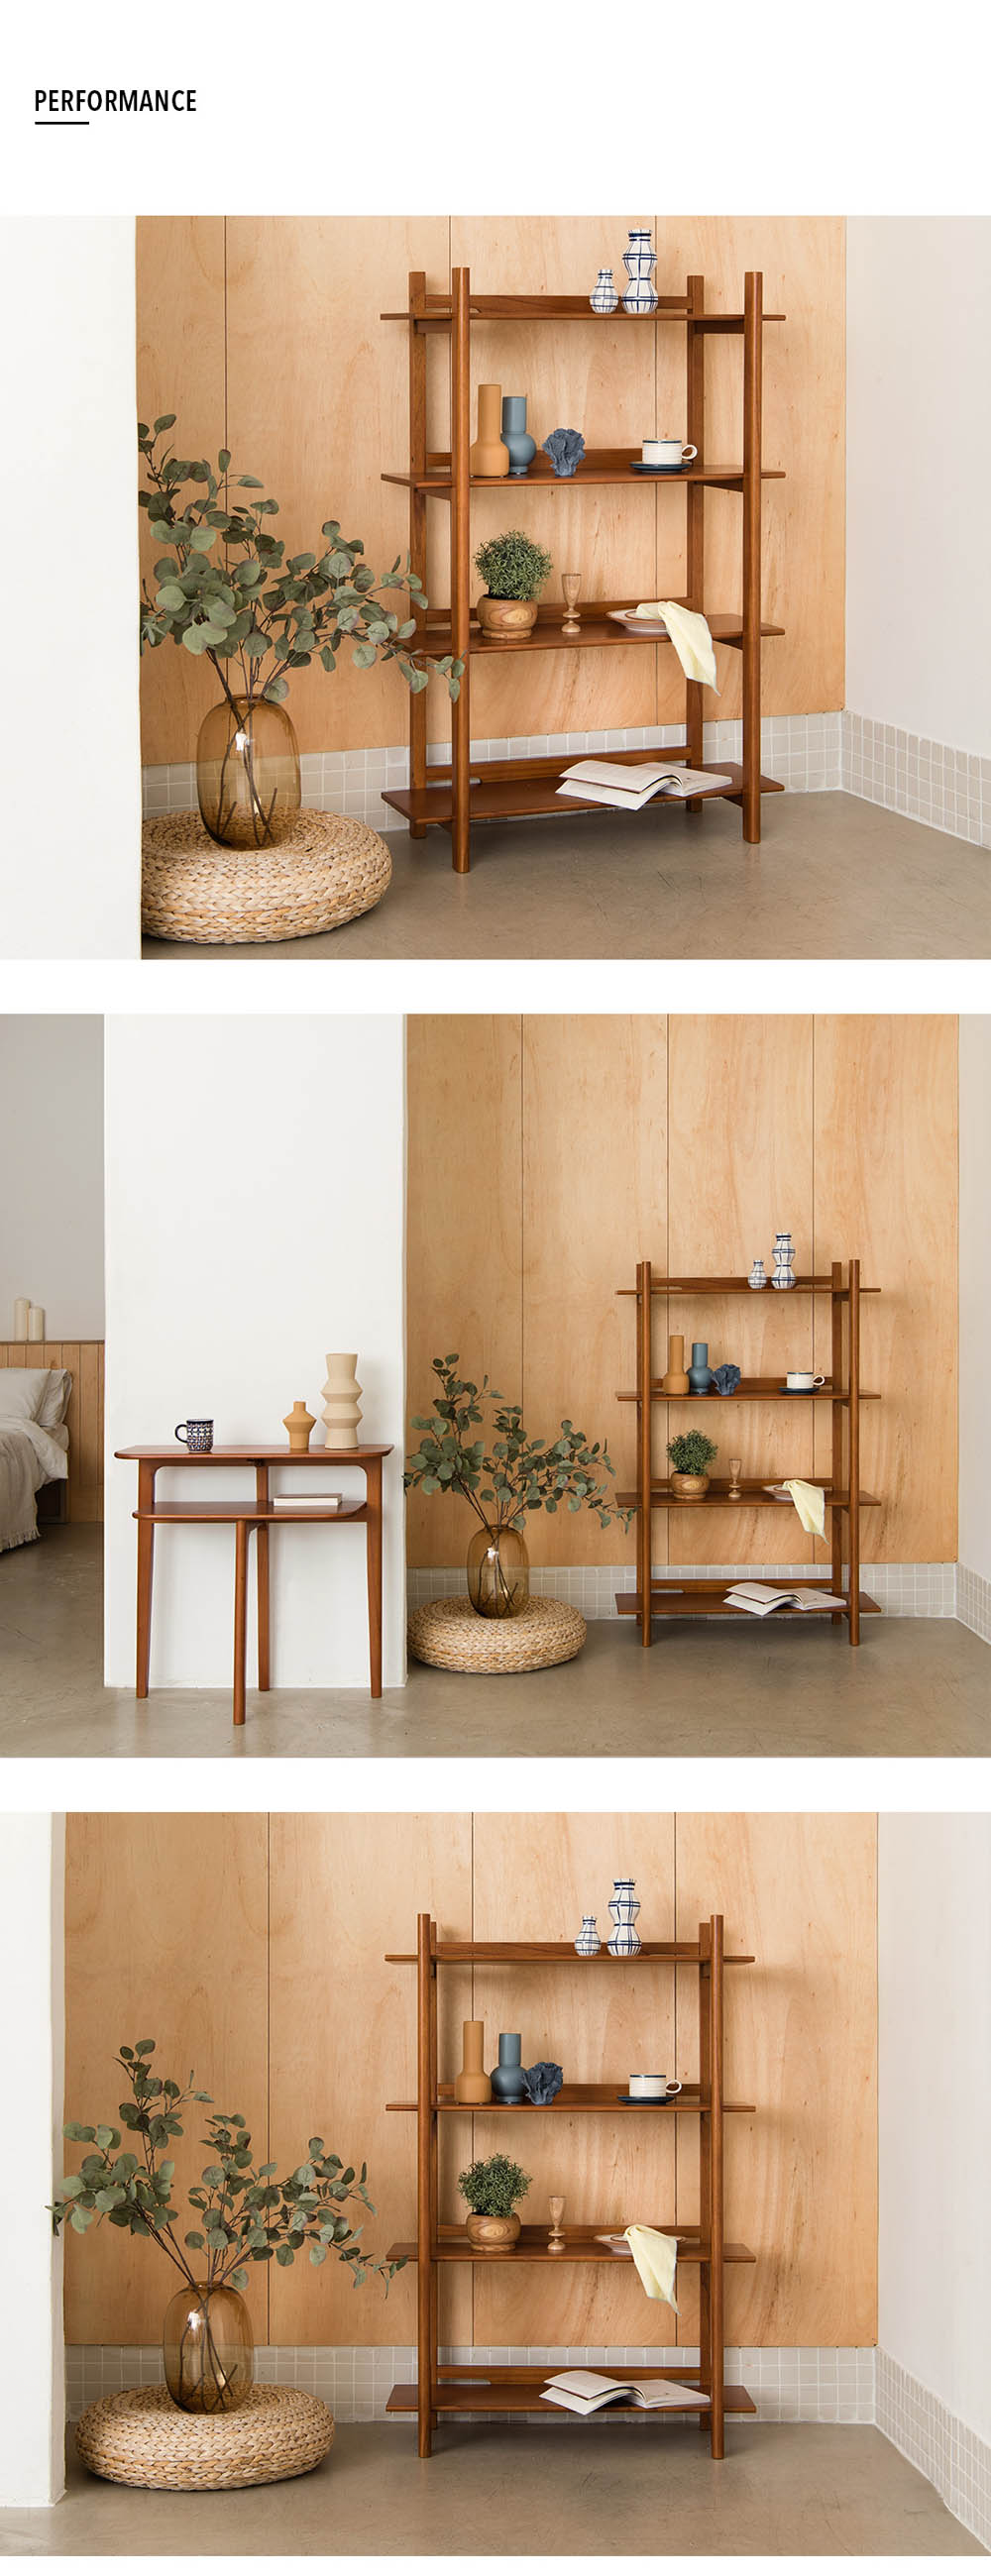 ContiNew_Antique/WR044MTO/continew_antique_4_tier_shelf_performance_specs_by_born_in_colour